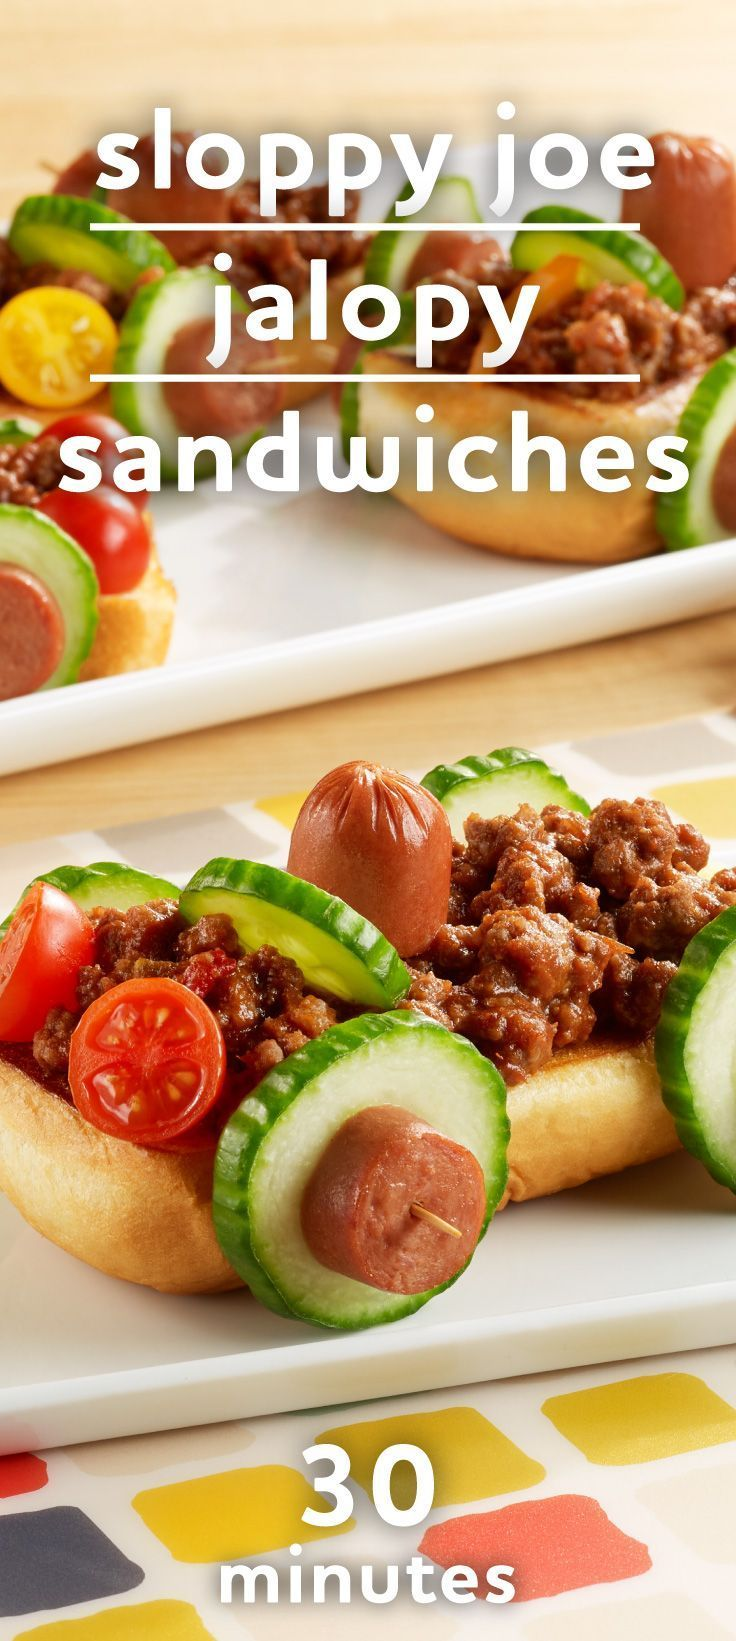 160 best kid friendly recipes images on pinterest baby foods sloppy joe jalopy sandwiches forumfinder Gallery